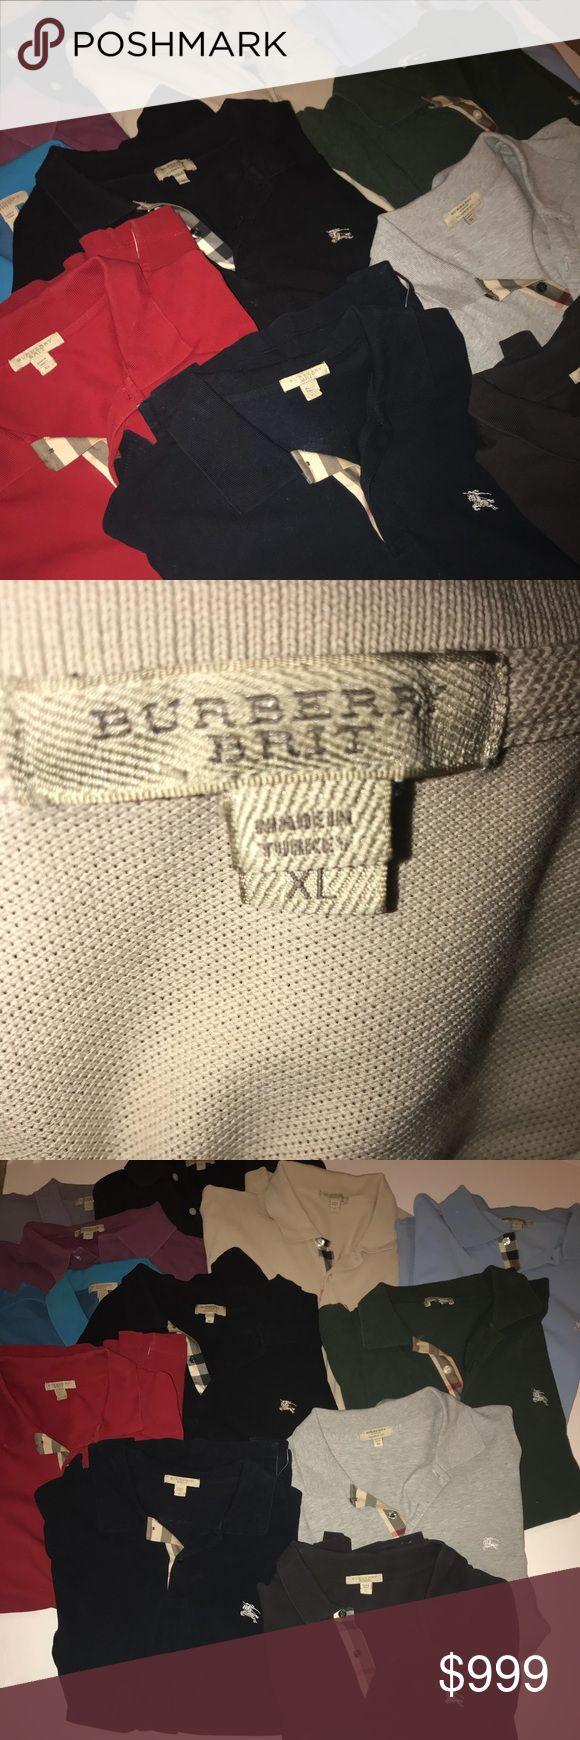 Burberry polo shirts Mint condition: best offer accepted for bundle Burberry Shirts Polos